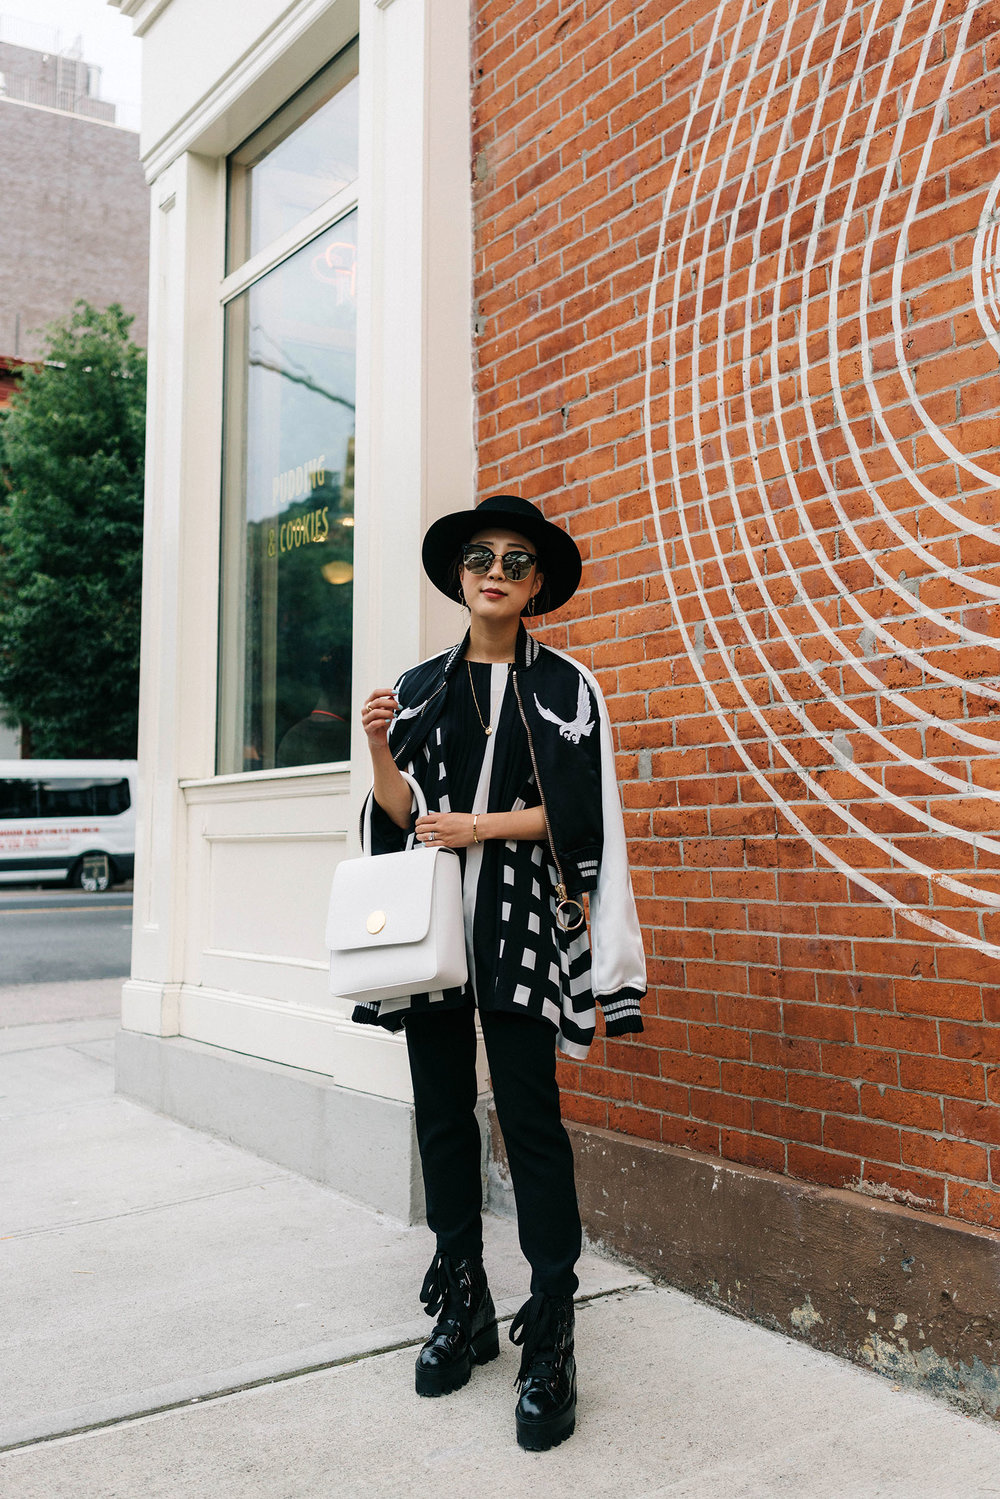 Off-White Jacket, Marimekko Top, Aritzia Pants, Ellery Shoes, Mansur Gavriel Bag, Gentle Monster Sunnies, Cartier Necklace